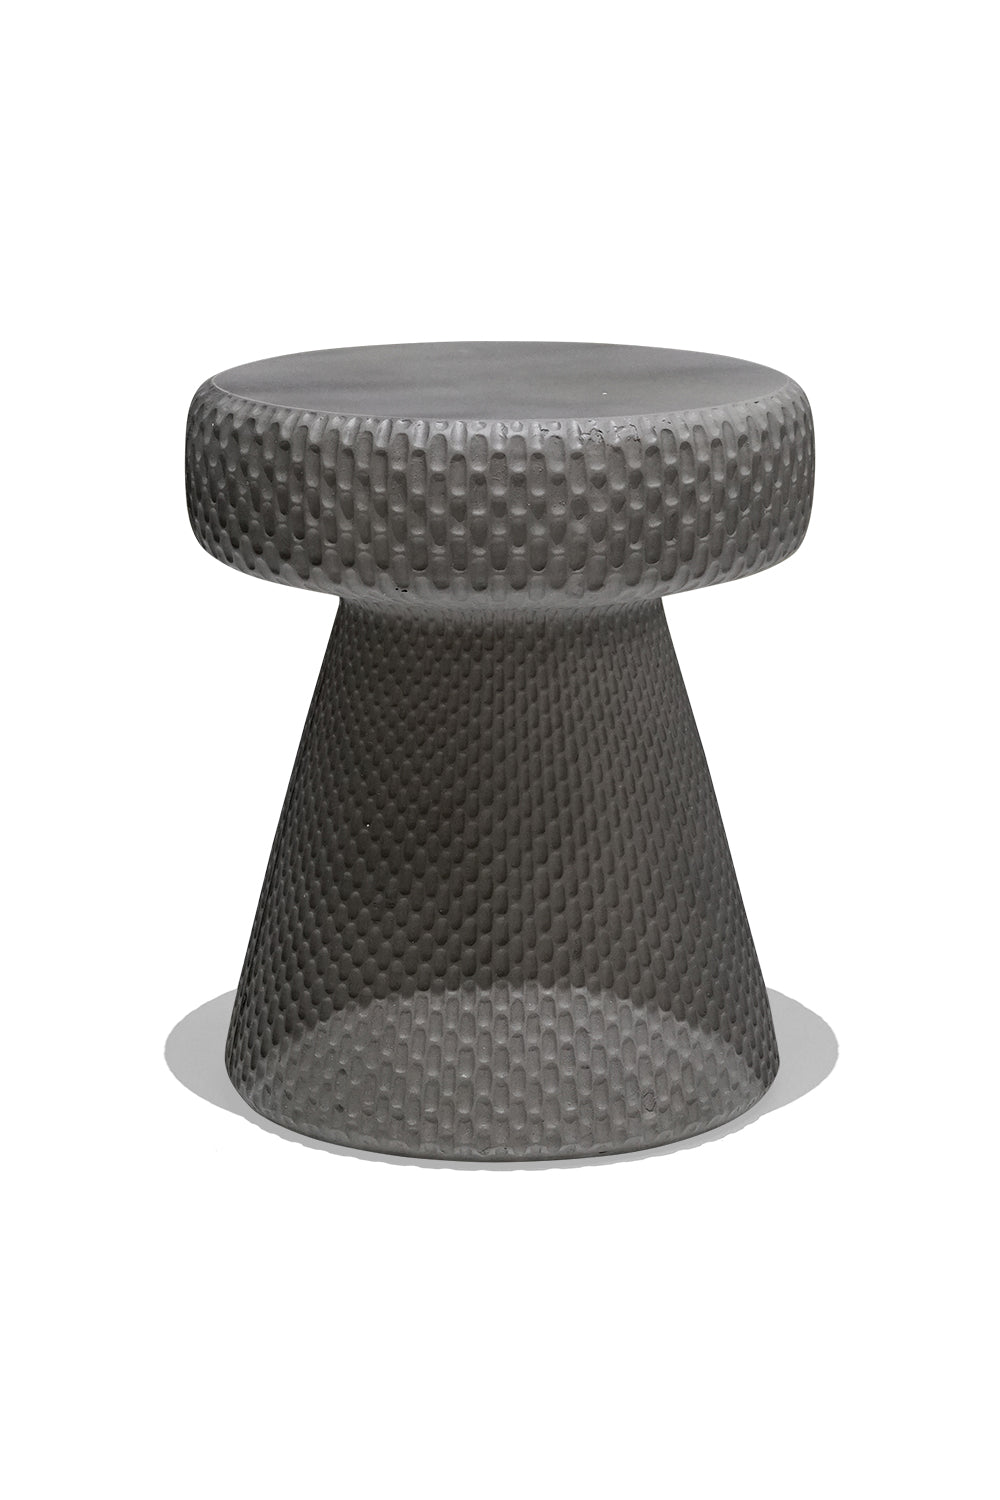 AVALON stool - textured